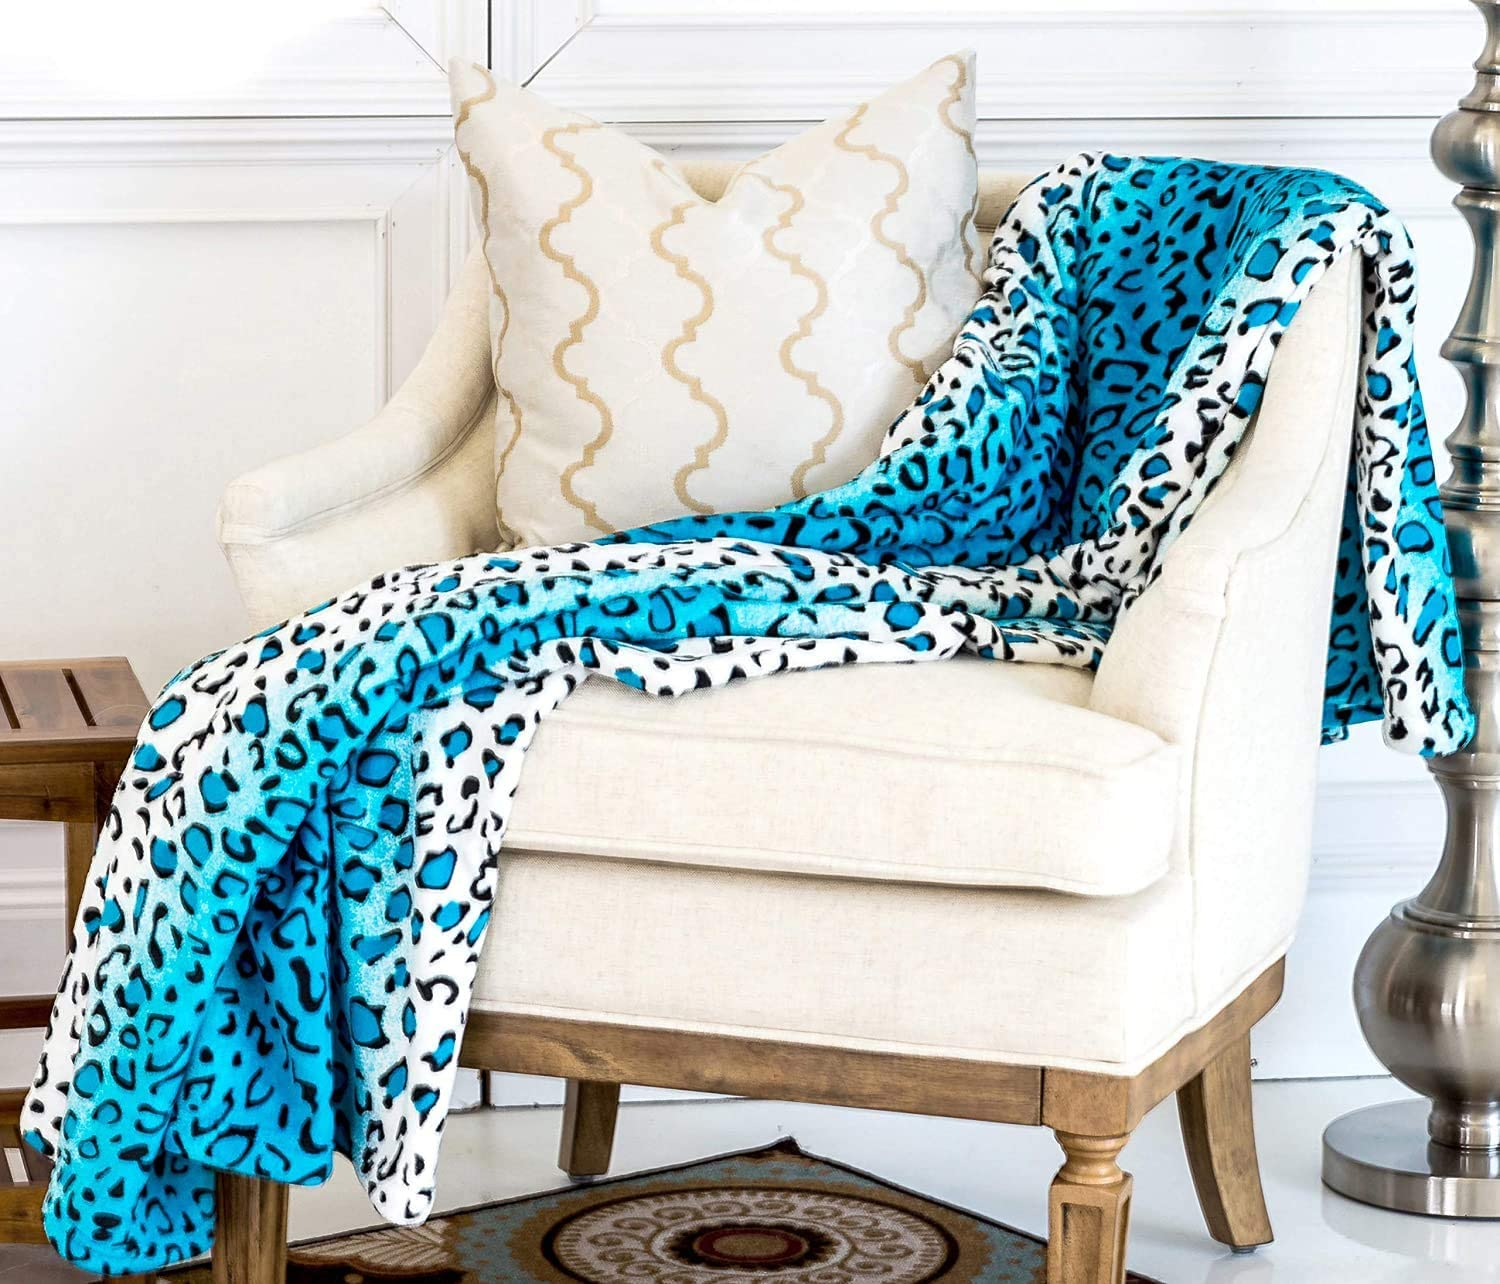 Home Must Haves Soft Warm Throw Turquoise Leopard Printed Flannel Blanket Bedding King Size